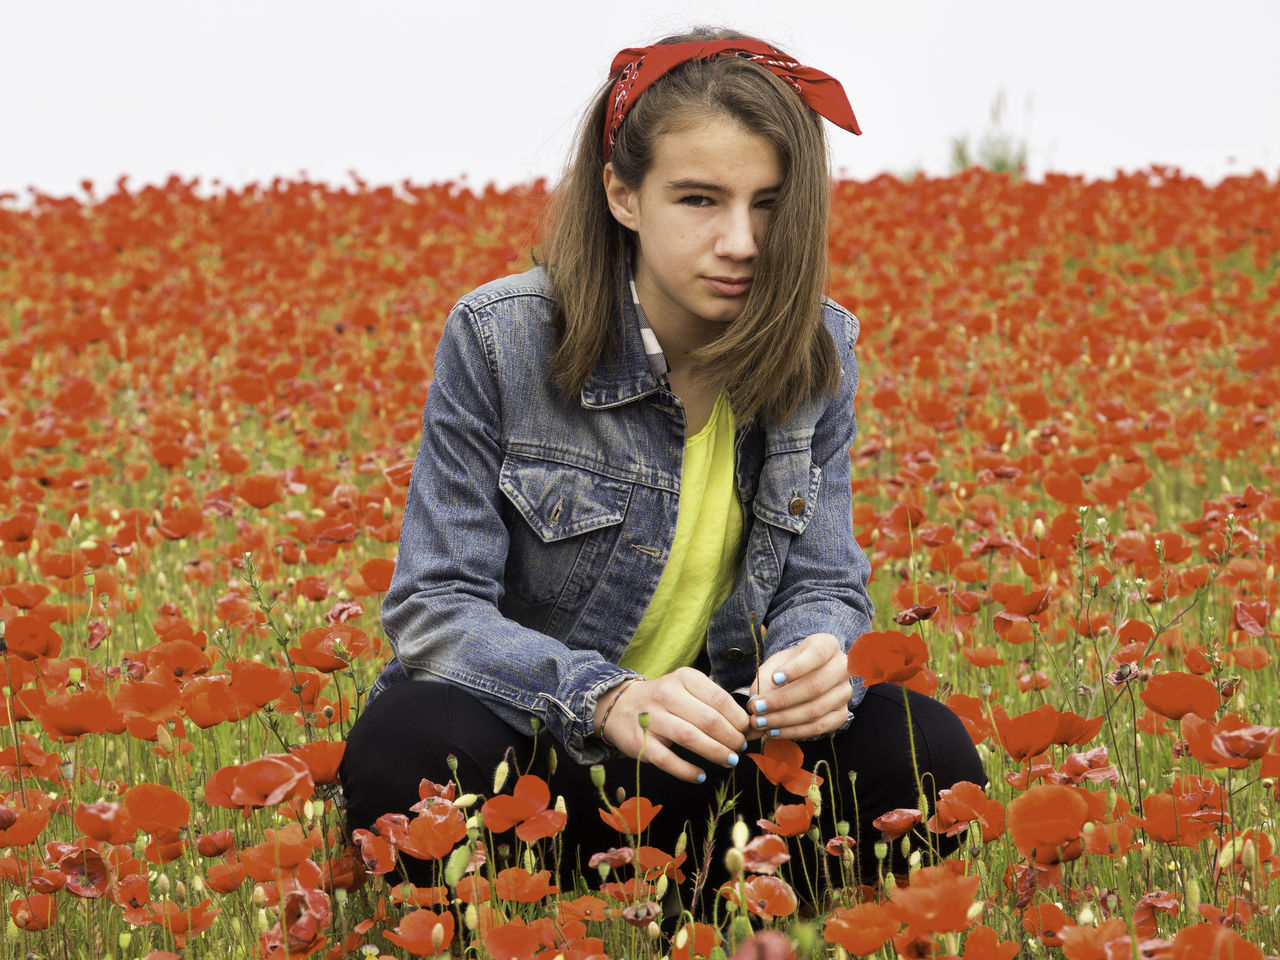 Growing love Beauty In Nature Casual Clothing Exceptional Photographs EyeEm Best Shots EyeEm Gallery EyeEm Masterclass Irene Kid Leisure Activity Lifestyles Little Girl Looking At Camera Love Outdoors Person Poppies  Poppy Field Portrait Season  Spring Springtime Teenager Girl Power